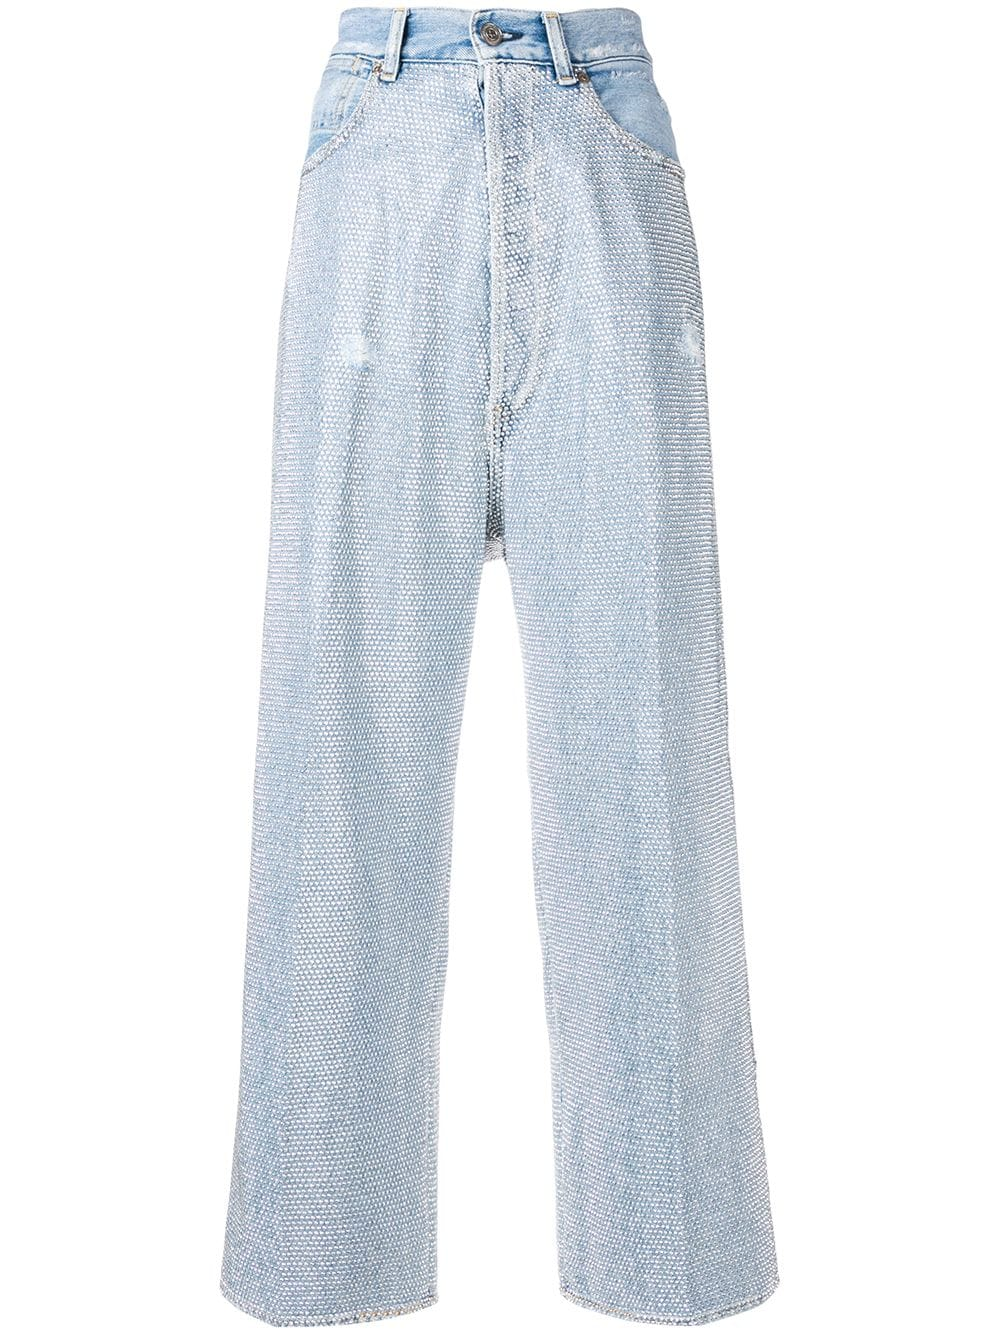 Picture of Golden Goose Deluxe Brand | Breezy Embellished Jeans